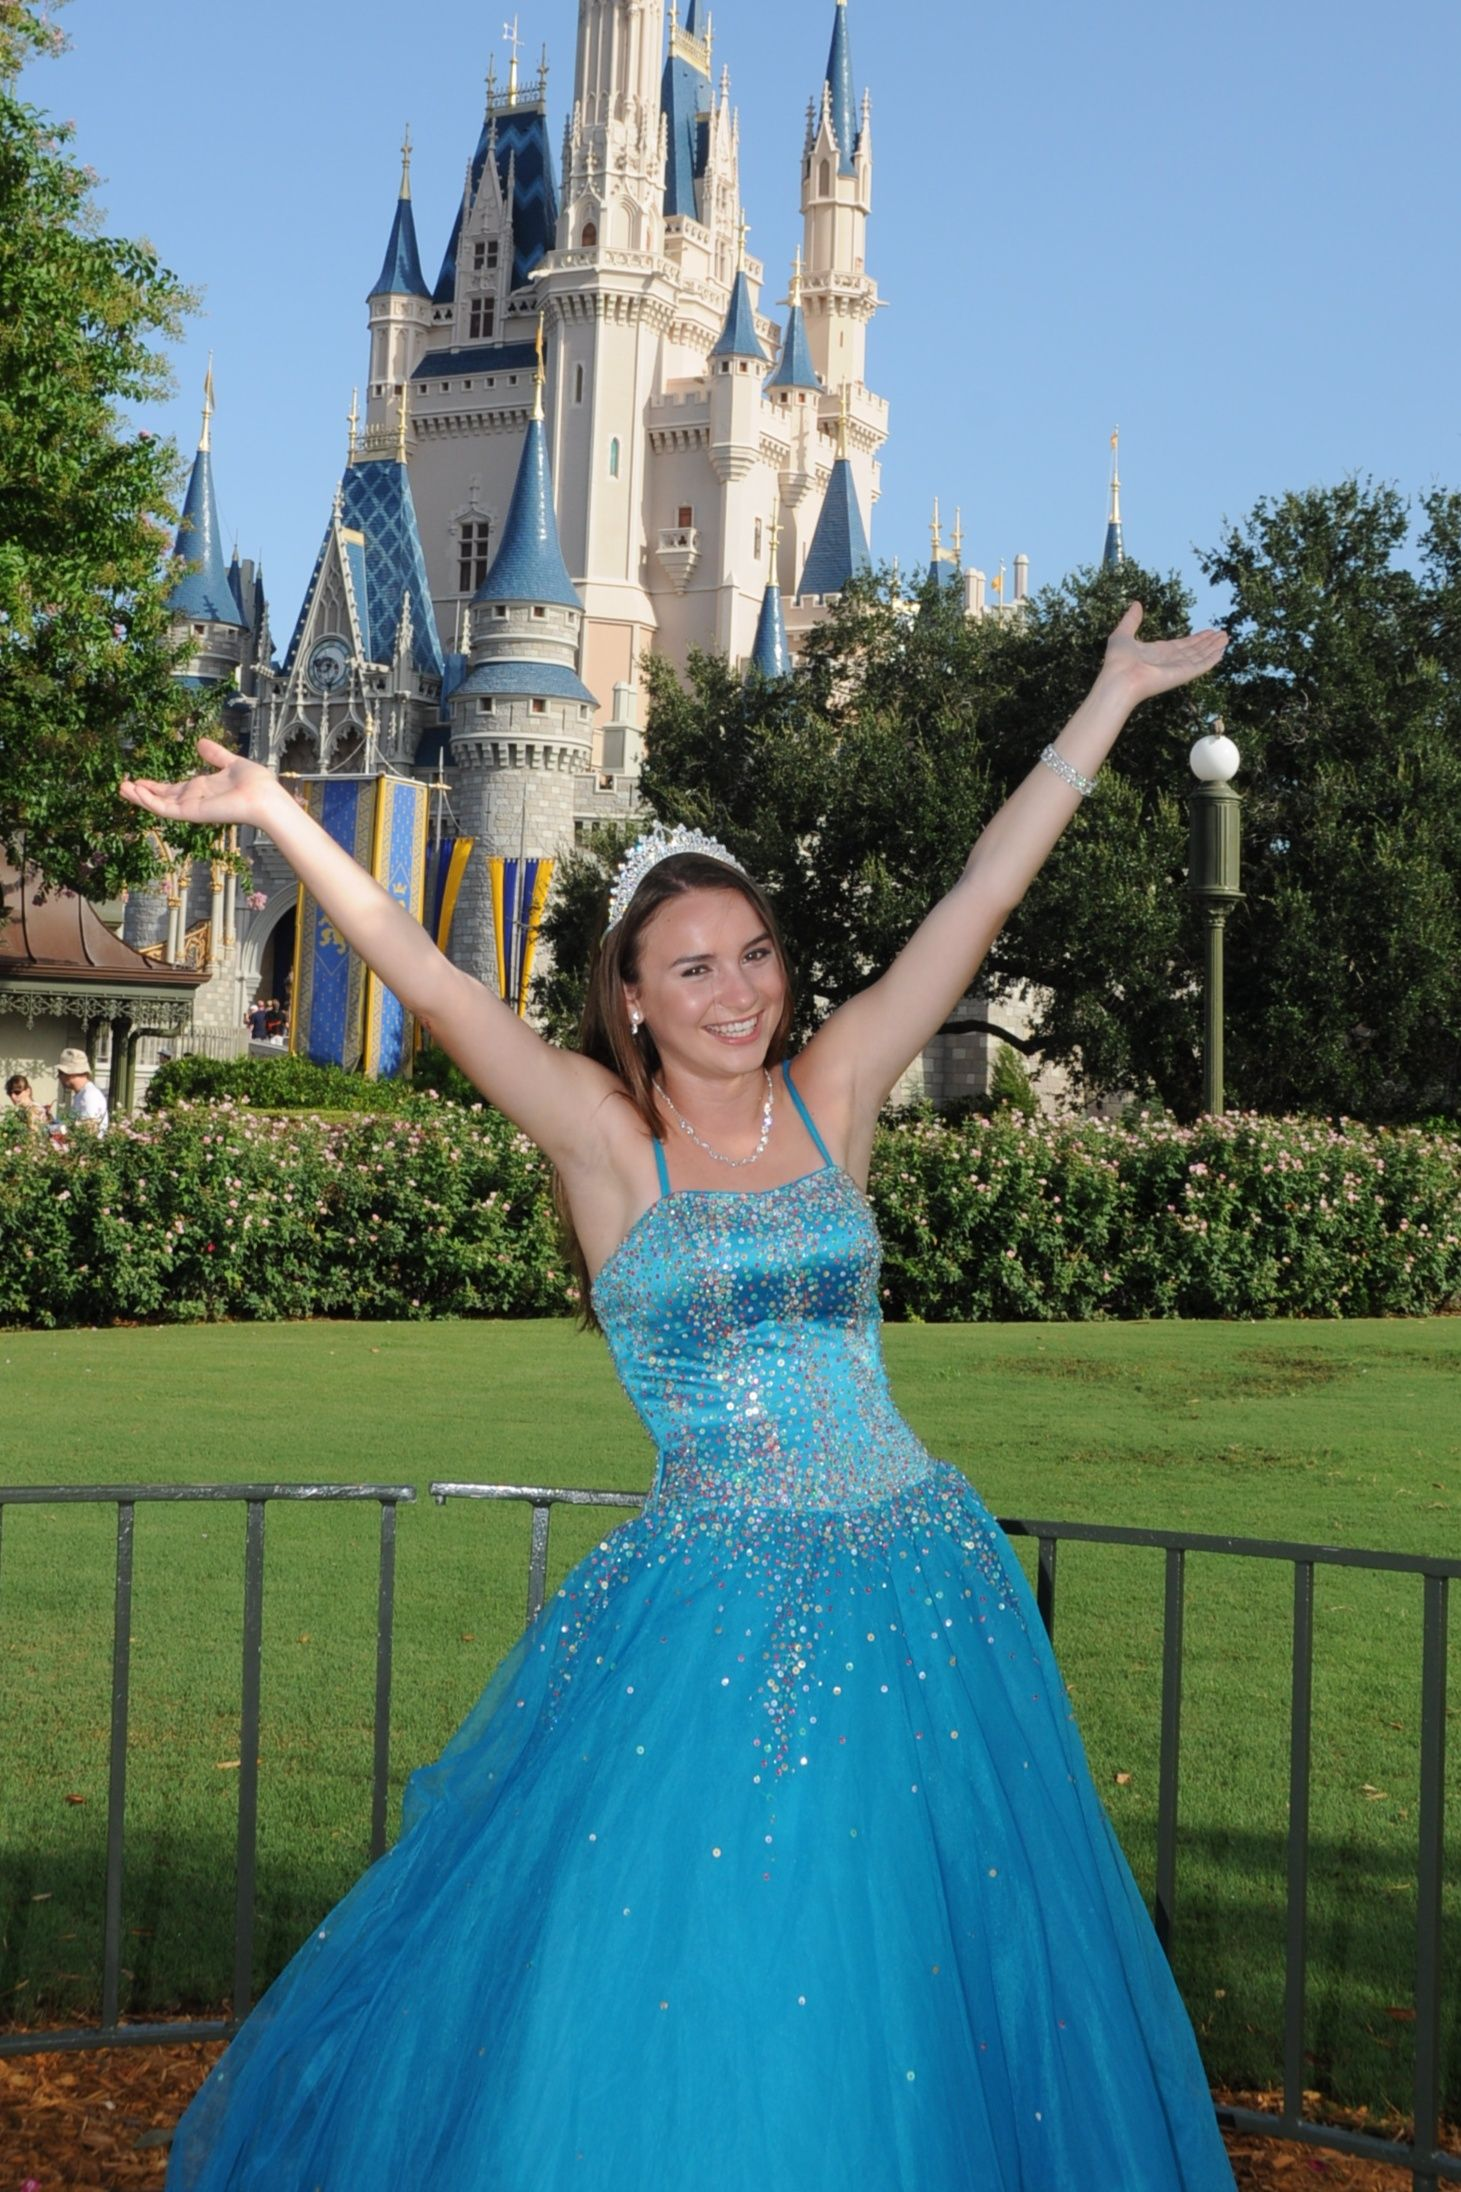 Quinceanera Photo Shoot At Disney World My Daughter